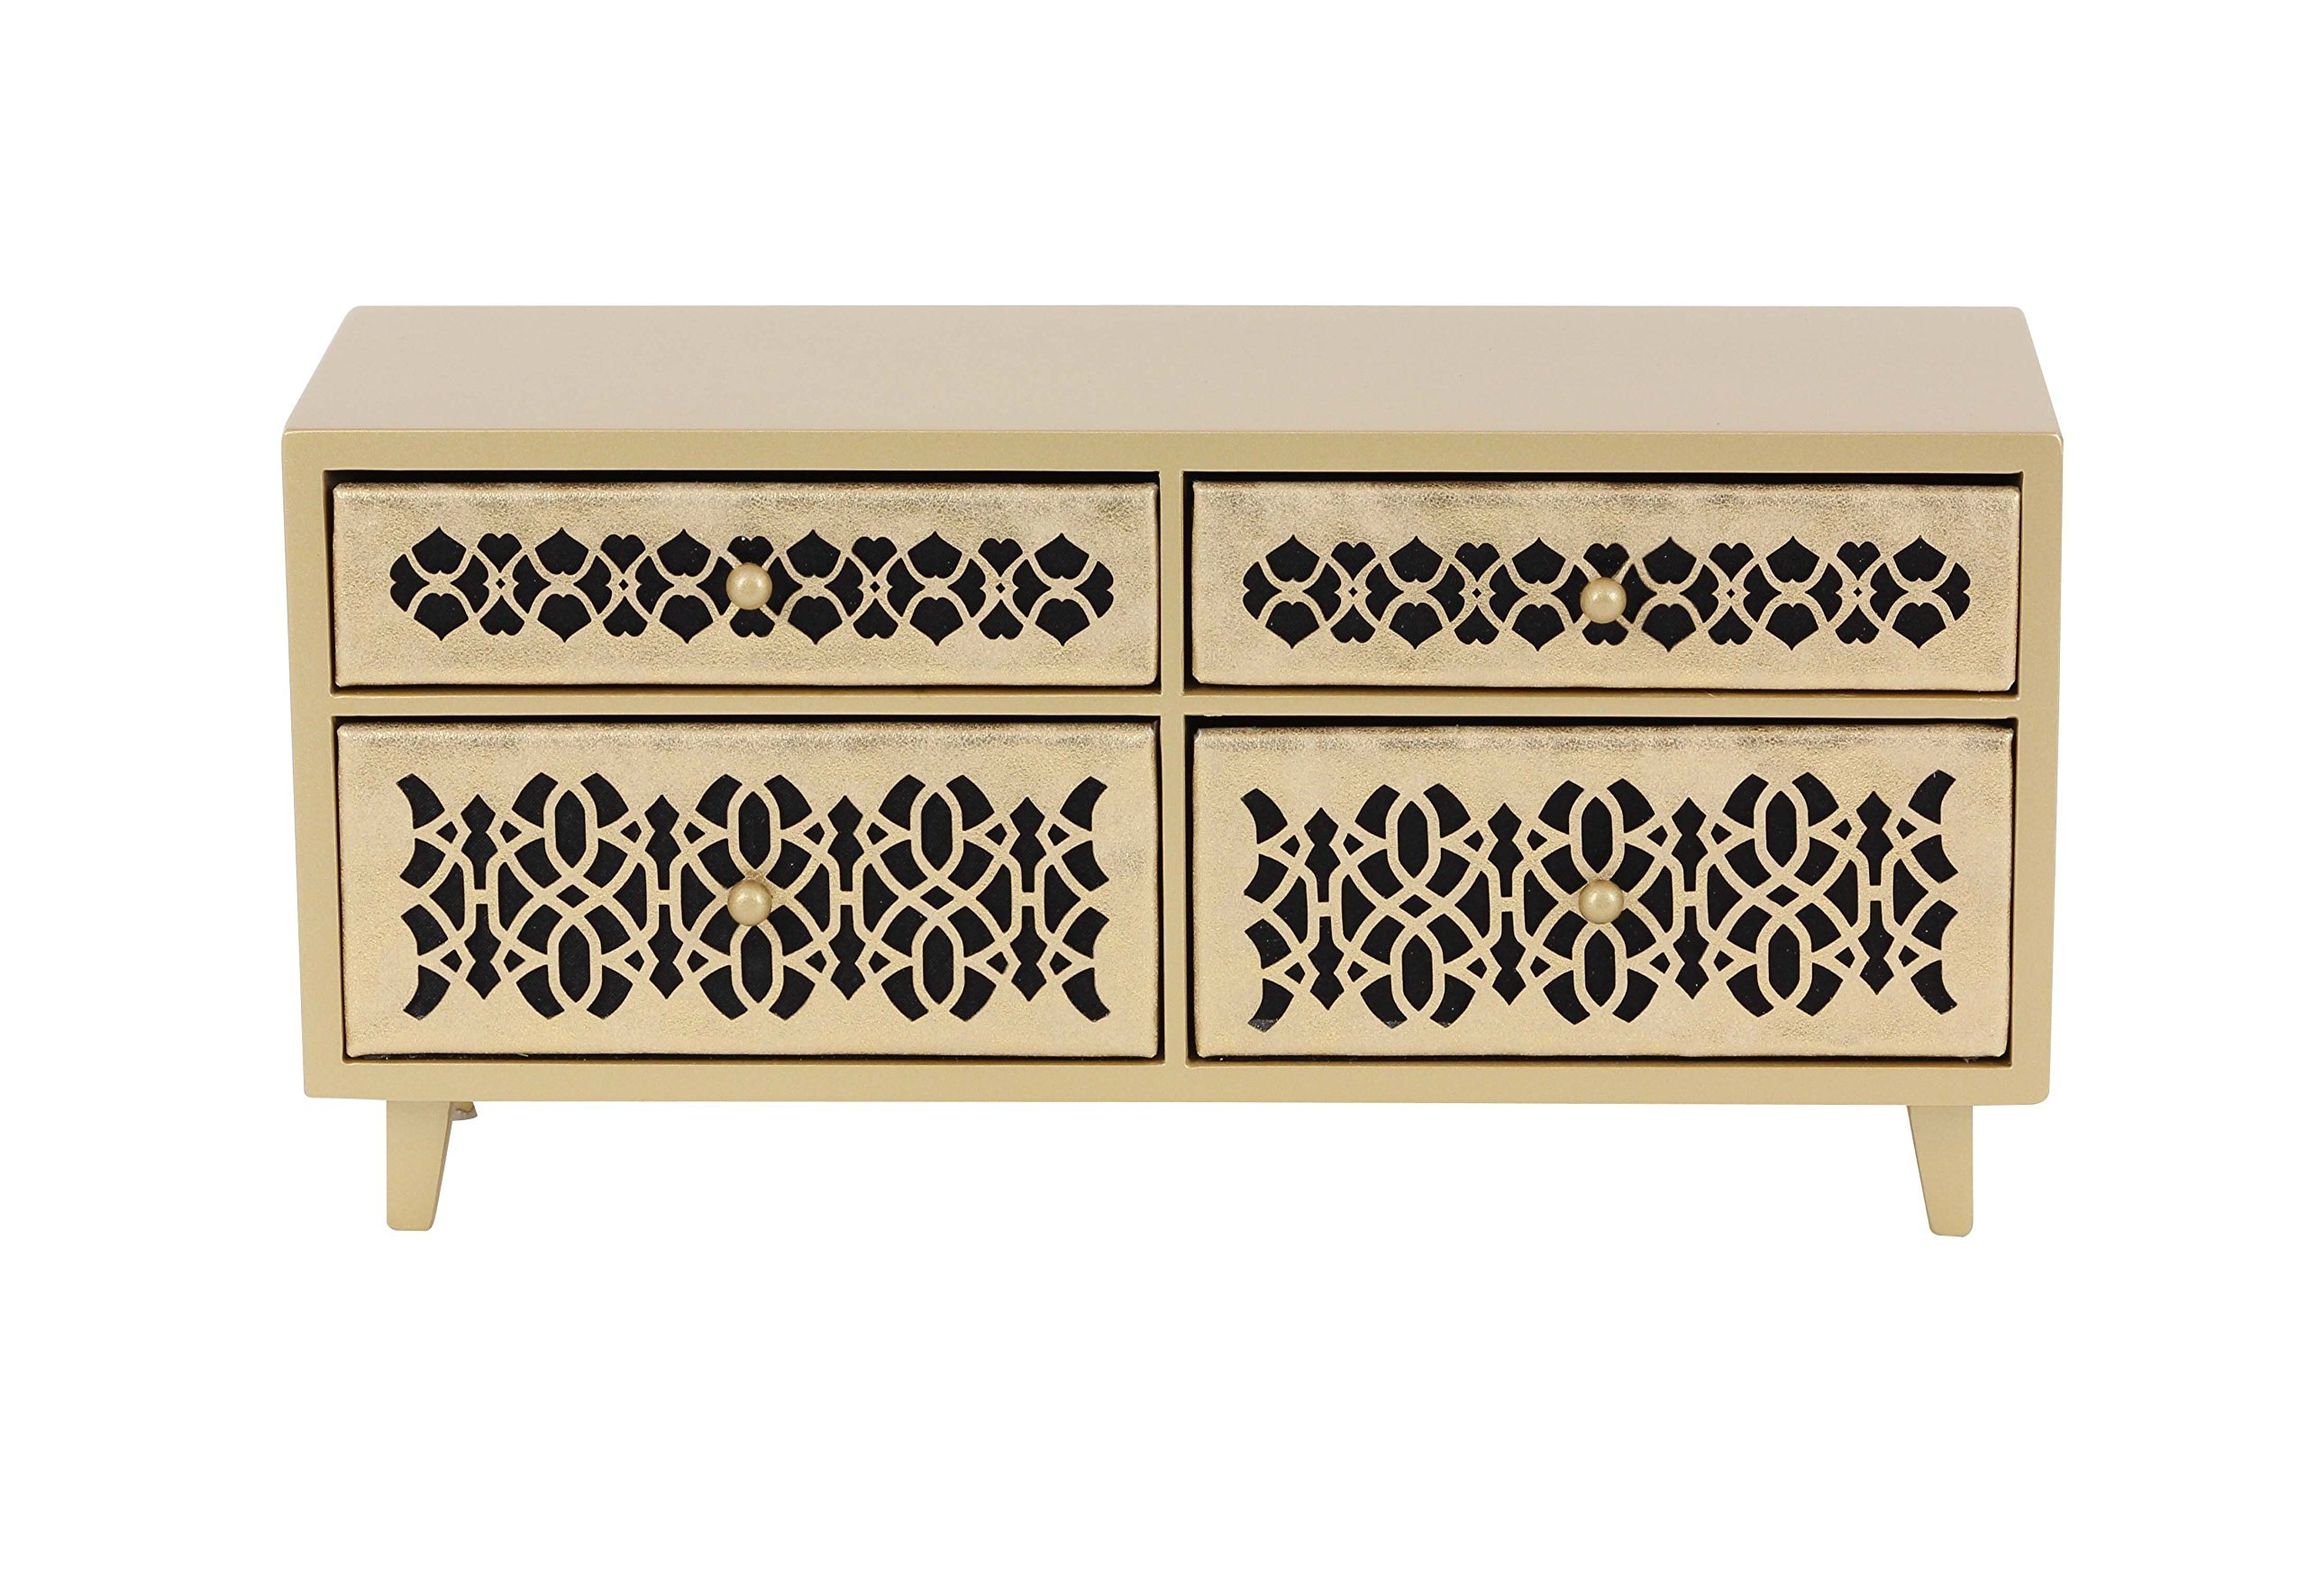 Deco 79 82181 Wooden 4-Drawer Jewelry Chest, 7'' x 15'', Gold/Black by Deco 79 (Image #1)